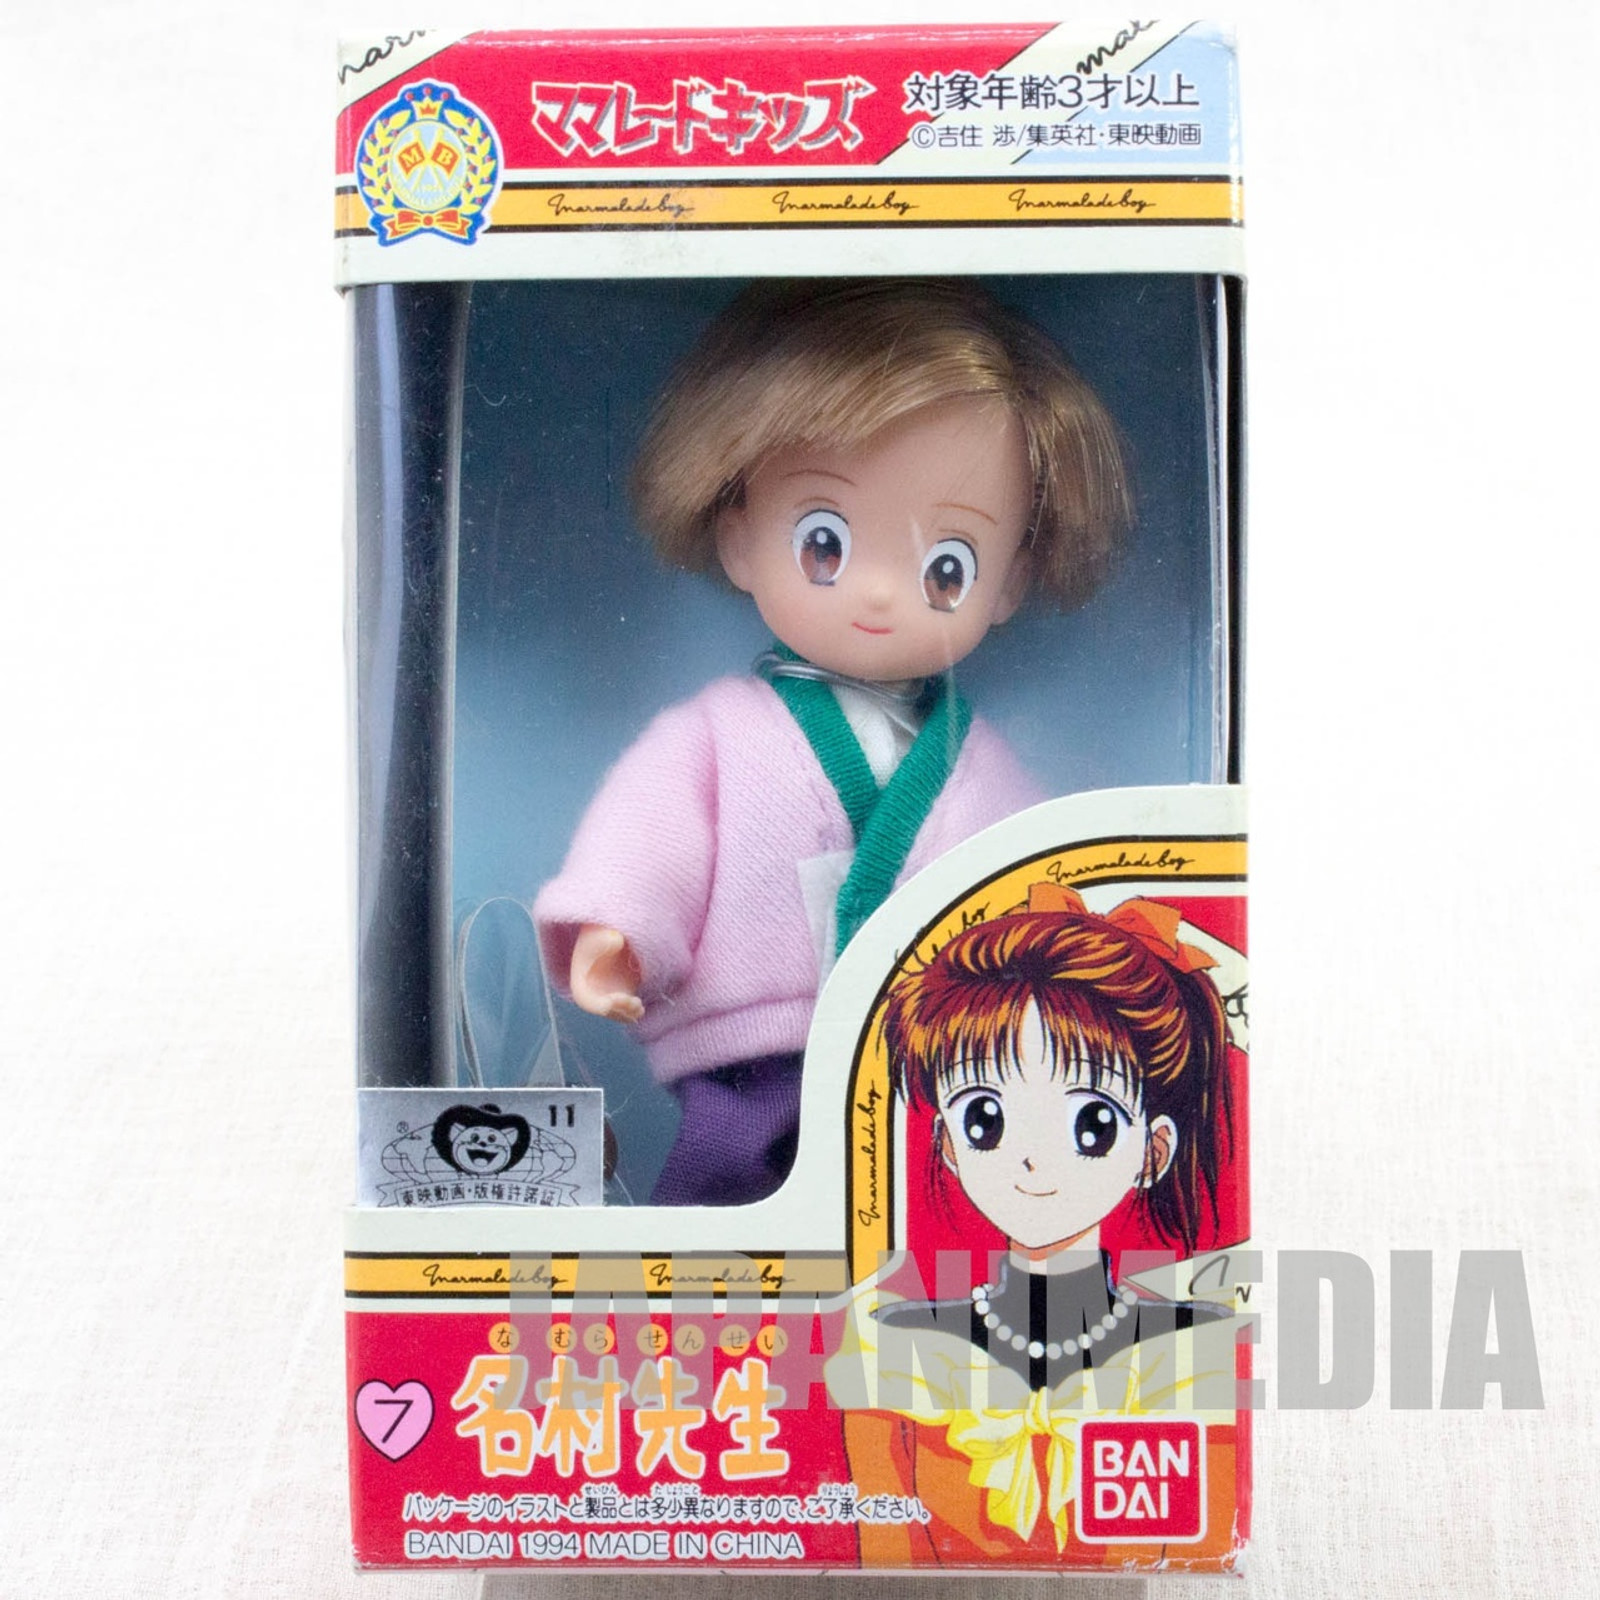 Retro RARE Marmalade Boy Shinichi Namura Kids Figure BANDAI 1994 JAPAN ANIME